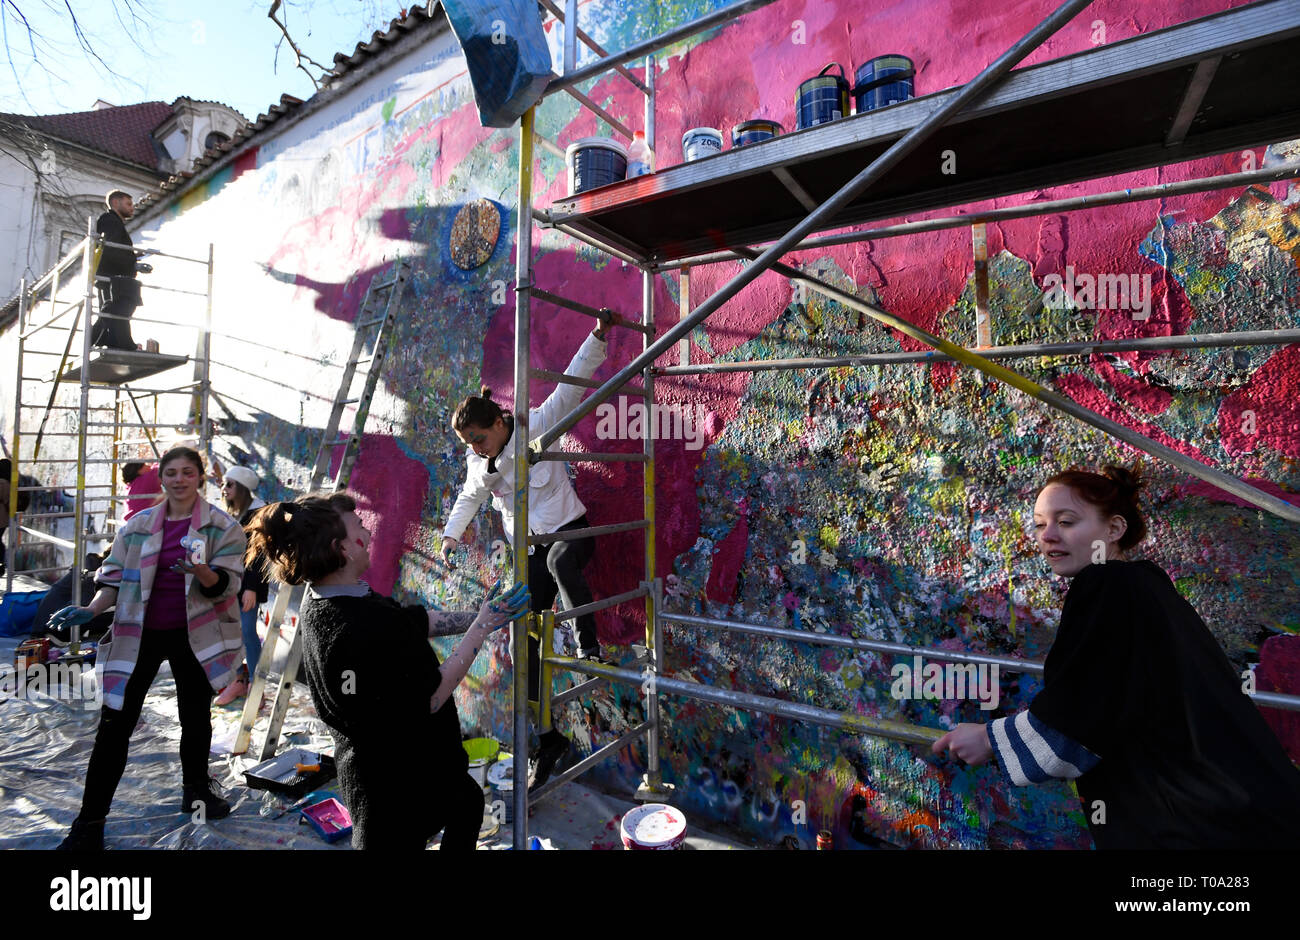 Prague, Czech Republic. 18th Mar, 2019. Start of celebrations of 30 years of free enterprise in the Czech Republic. 20 artists create joint work, Meet Art, measuring 150 square metres on Lennon Wall, Velkoprevorske namesti, Prague, Czech Republic, on Monday, March 18, 2019. Credit: Michal Krumphanzl/CTK Photo/Alamy Live News - Stock Image